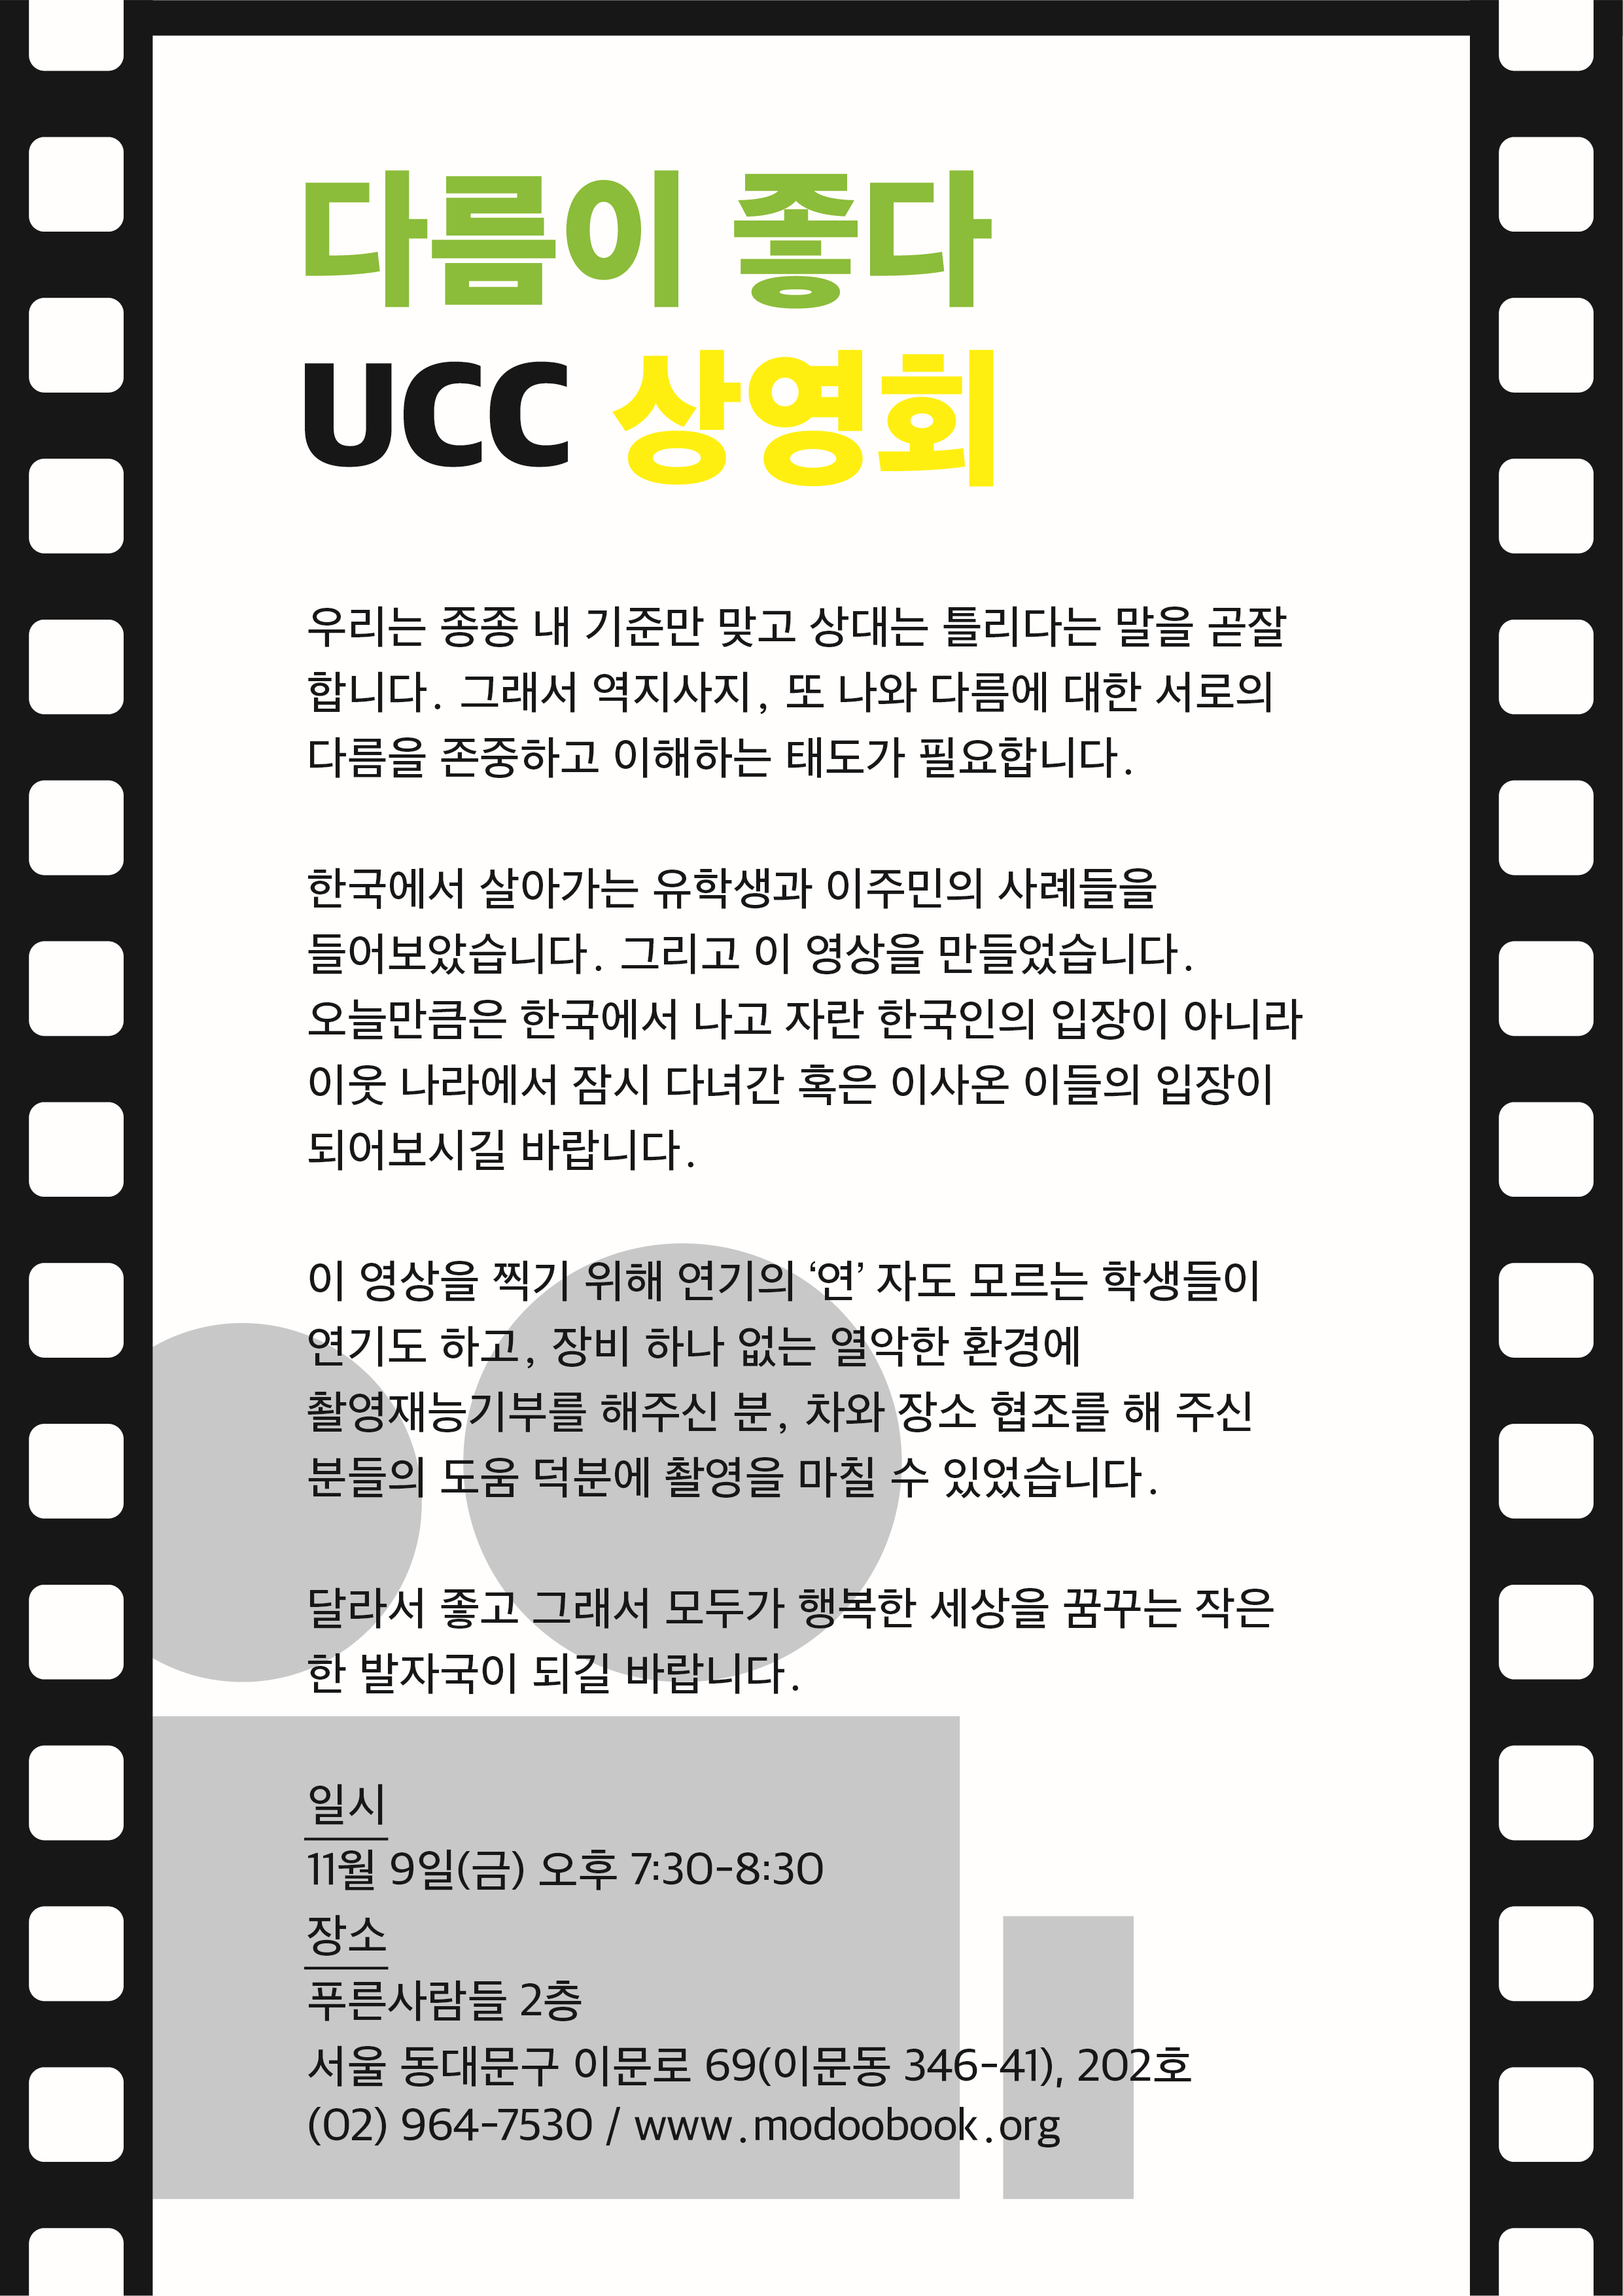 UCC상영회.png